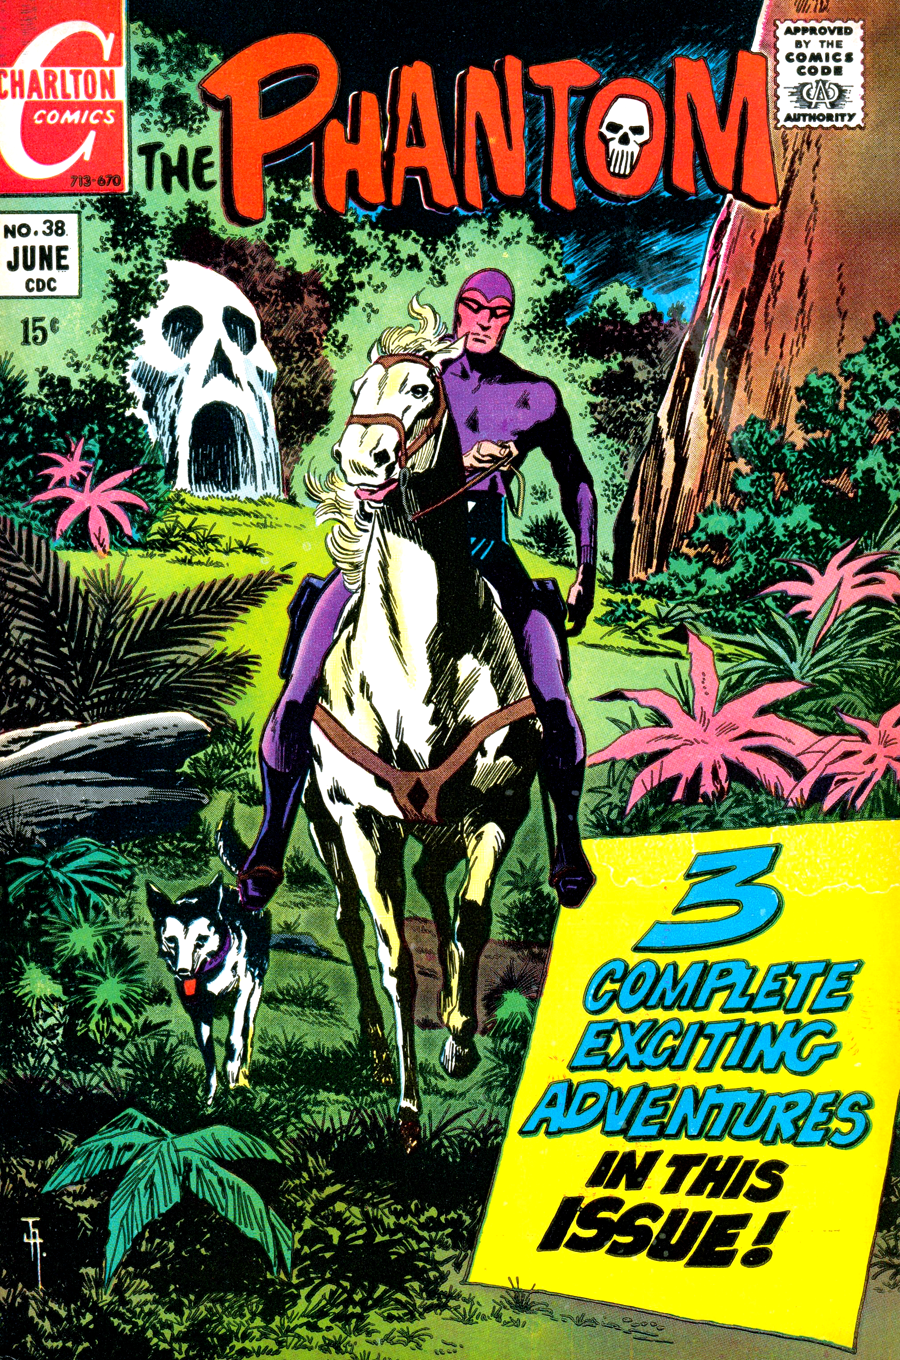 The Phantom #38 cover by Jim Aparo